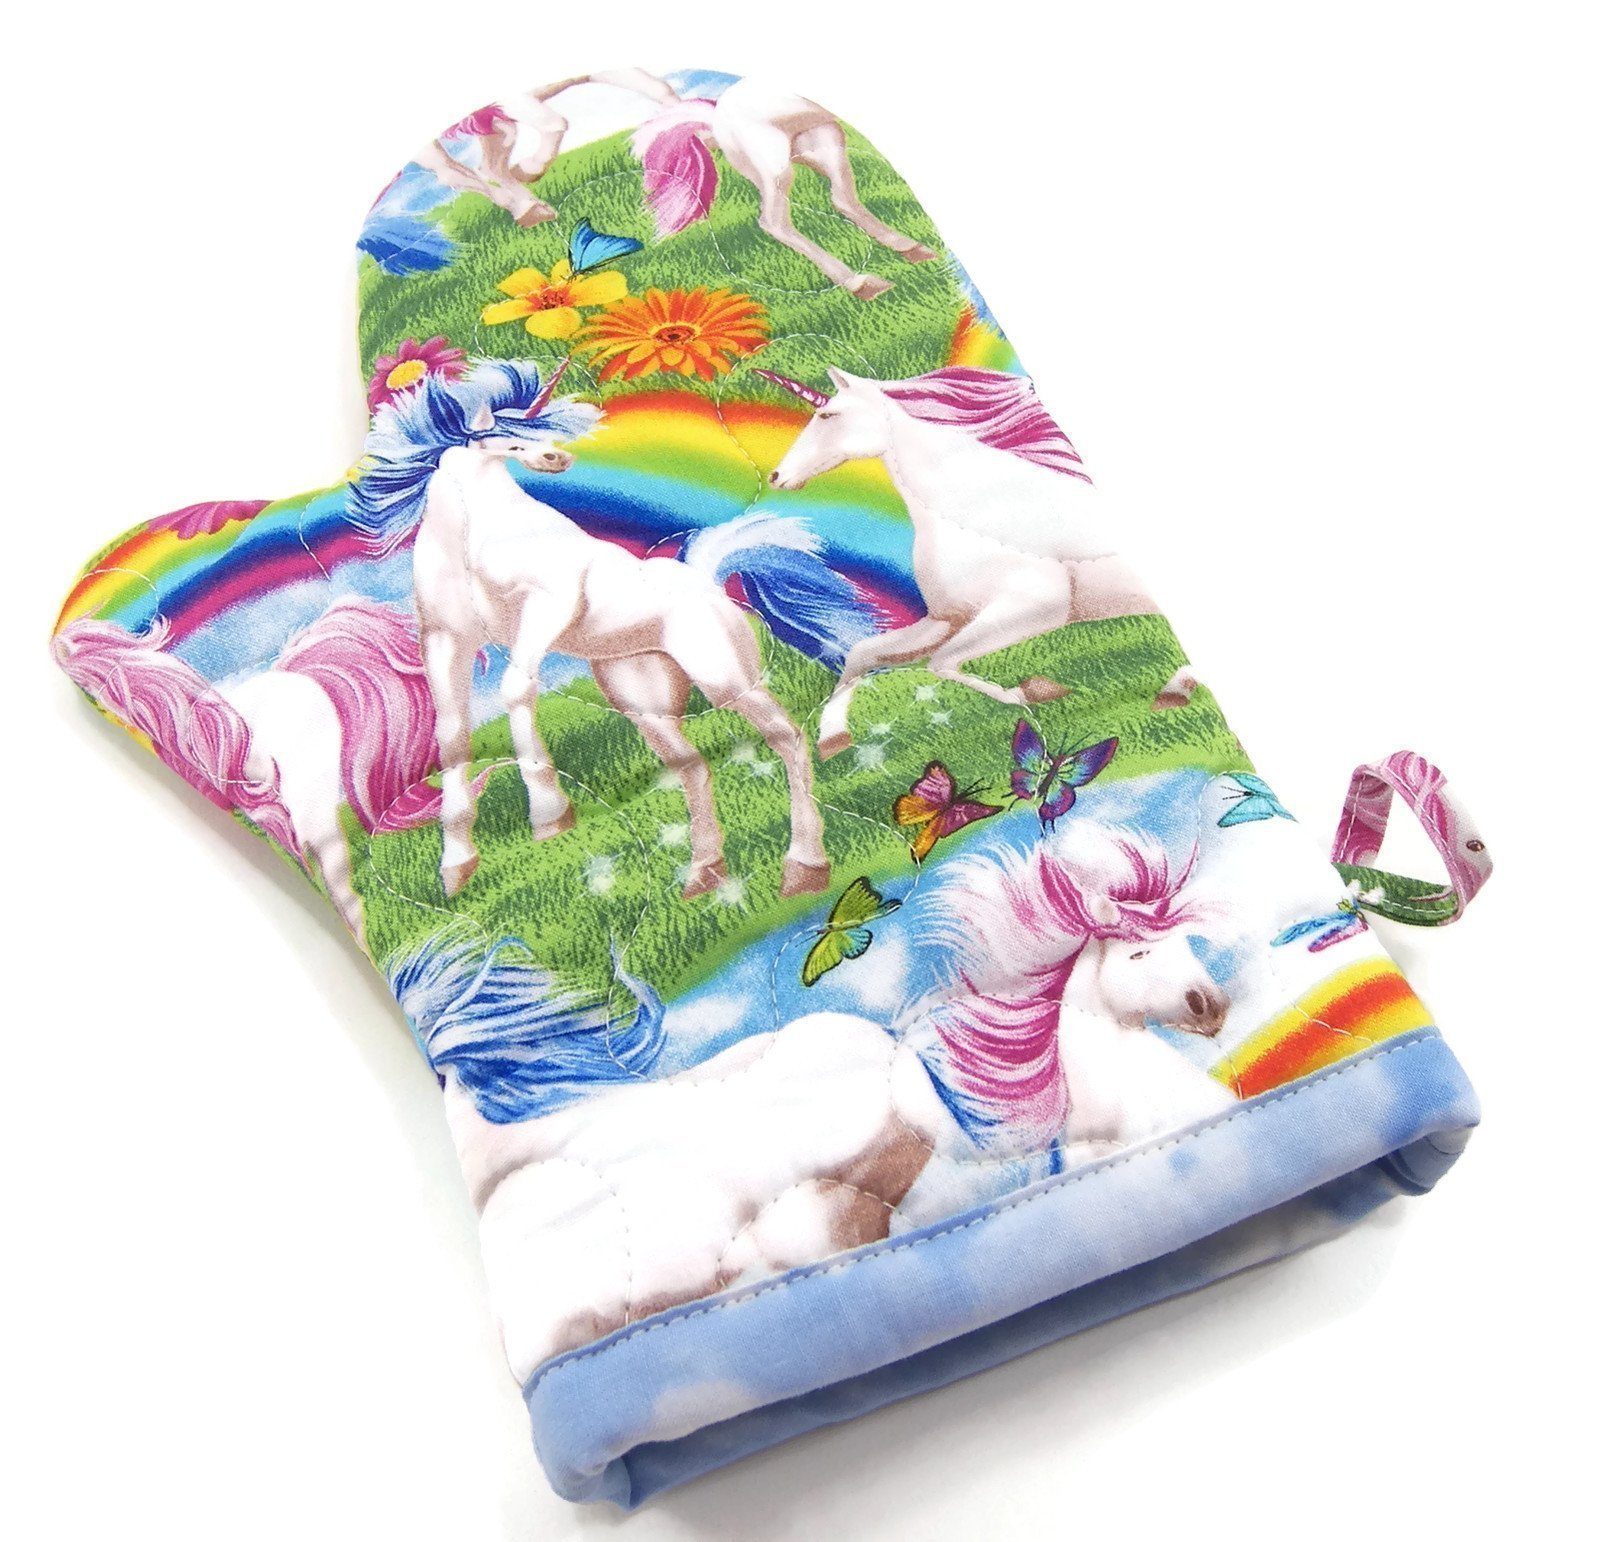 Unicorns and Rainbows Oven Mitt - Insulated Pot Holder - Cotton Fabric 6